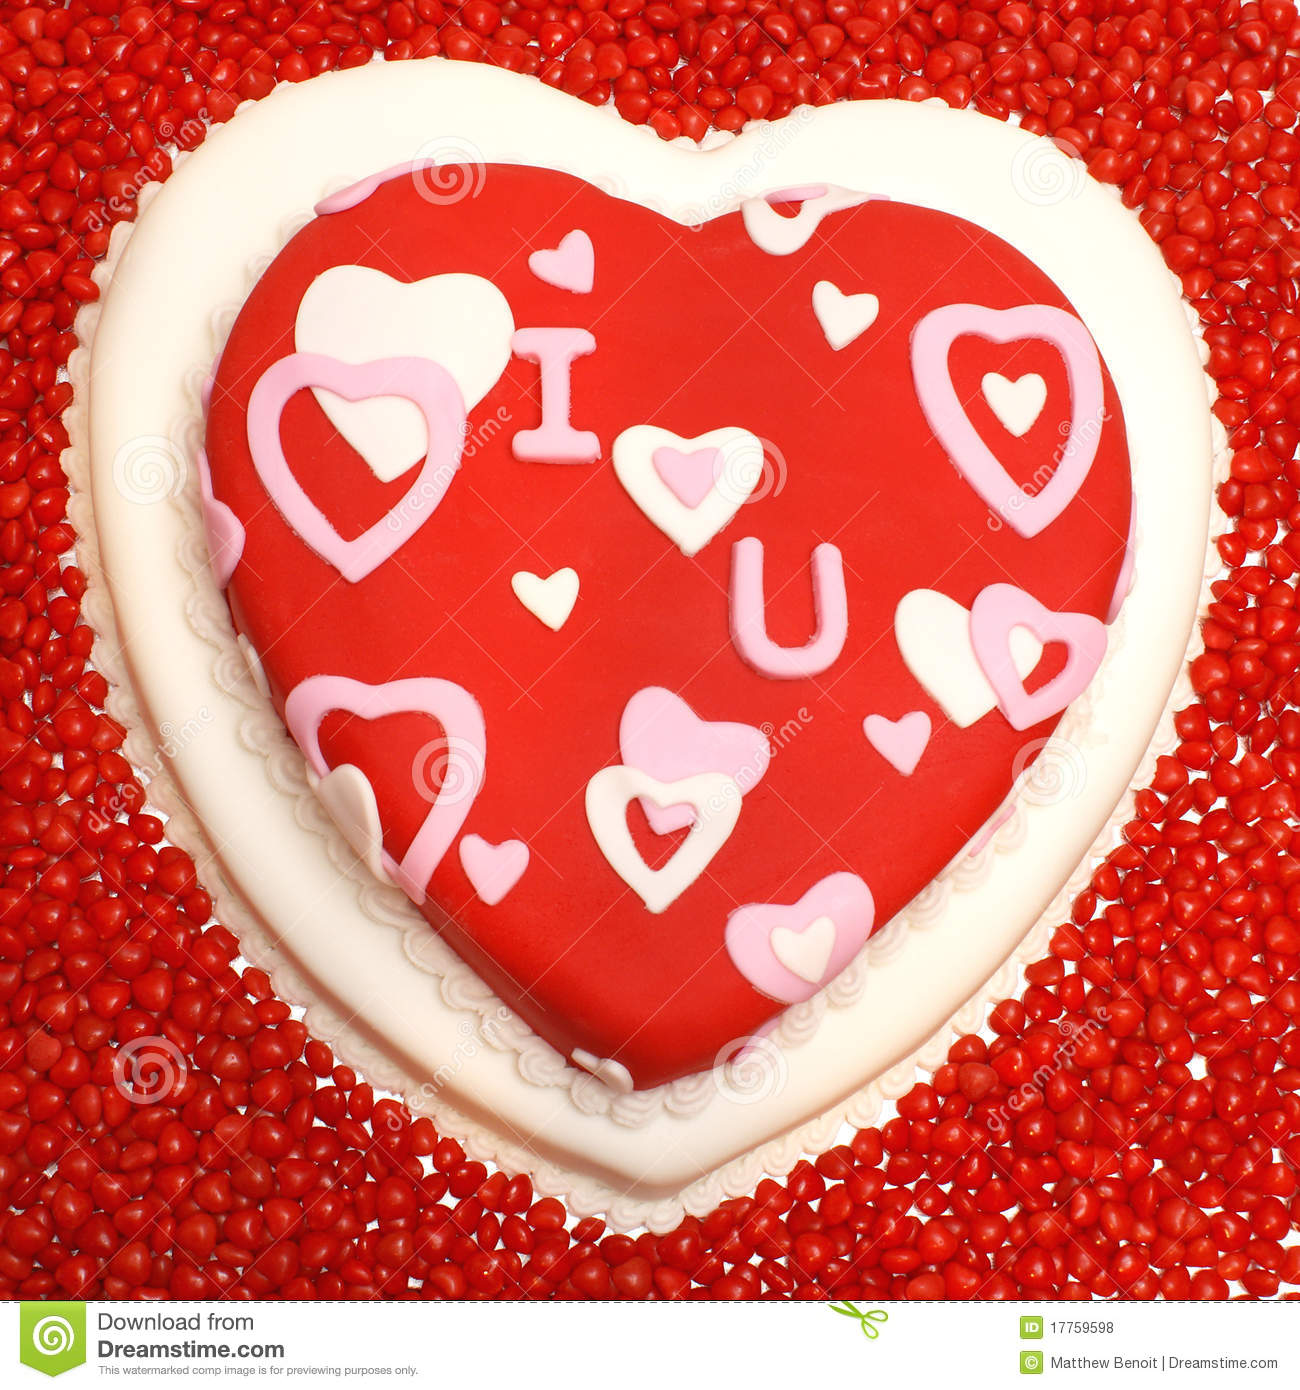 Heart Shaped Cake Stock Photos : Heart Shaped Cake Royalty Free Stock Photos - Image: 17759598